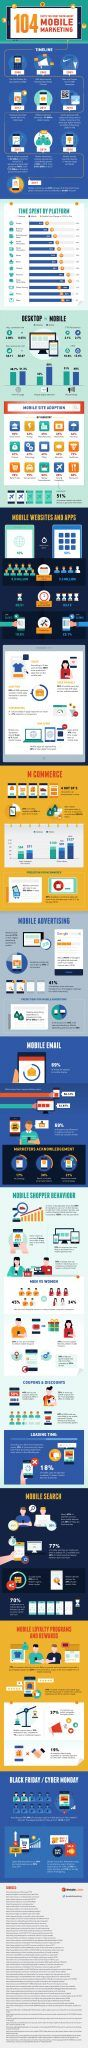 Mobile marketing may be a great source of major or could prove to be very lucrative. These tips will give you an inside look at the world of mobile marketing in order for you to have success. Mobile Marketing, Marketing Plan, Inbound Marketing, Internet Marketing, Digital Marketing, Marketing Strategies, Business Marketing, Content Marketing, Business Tips